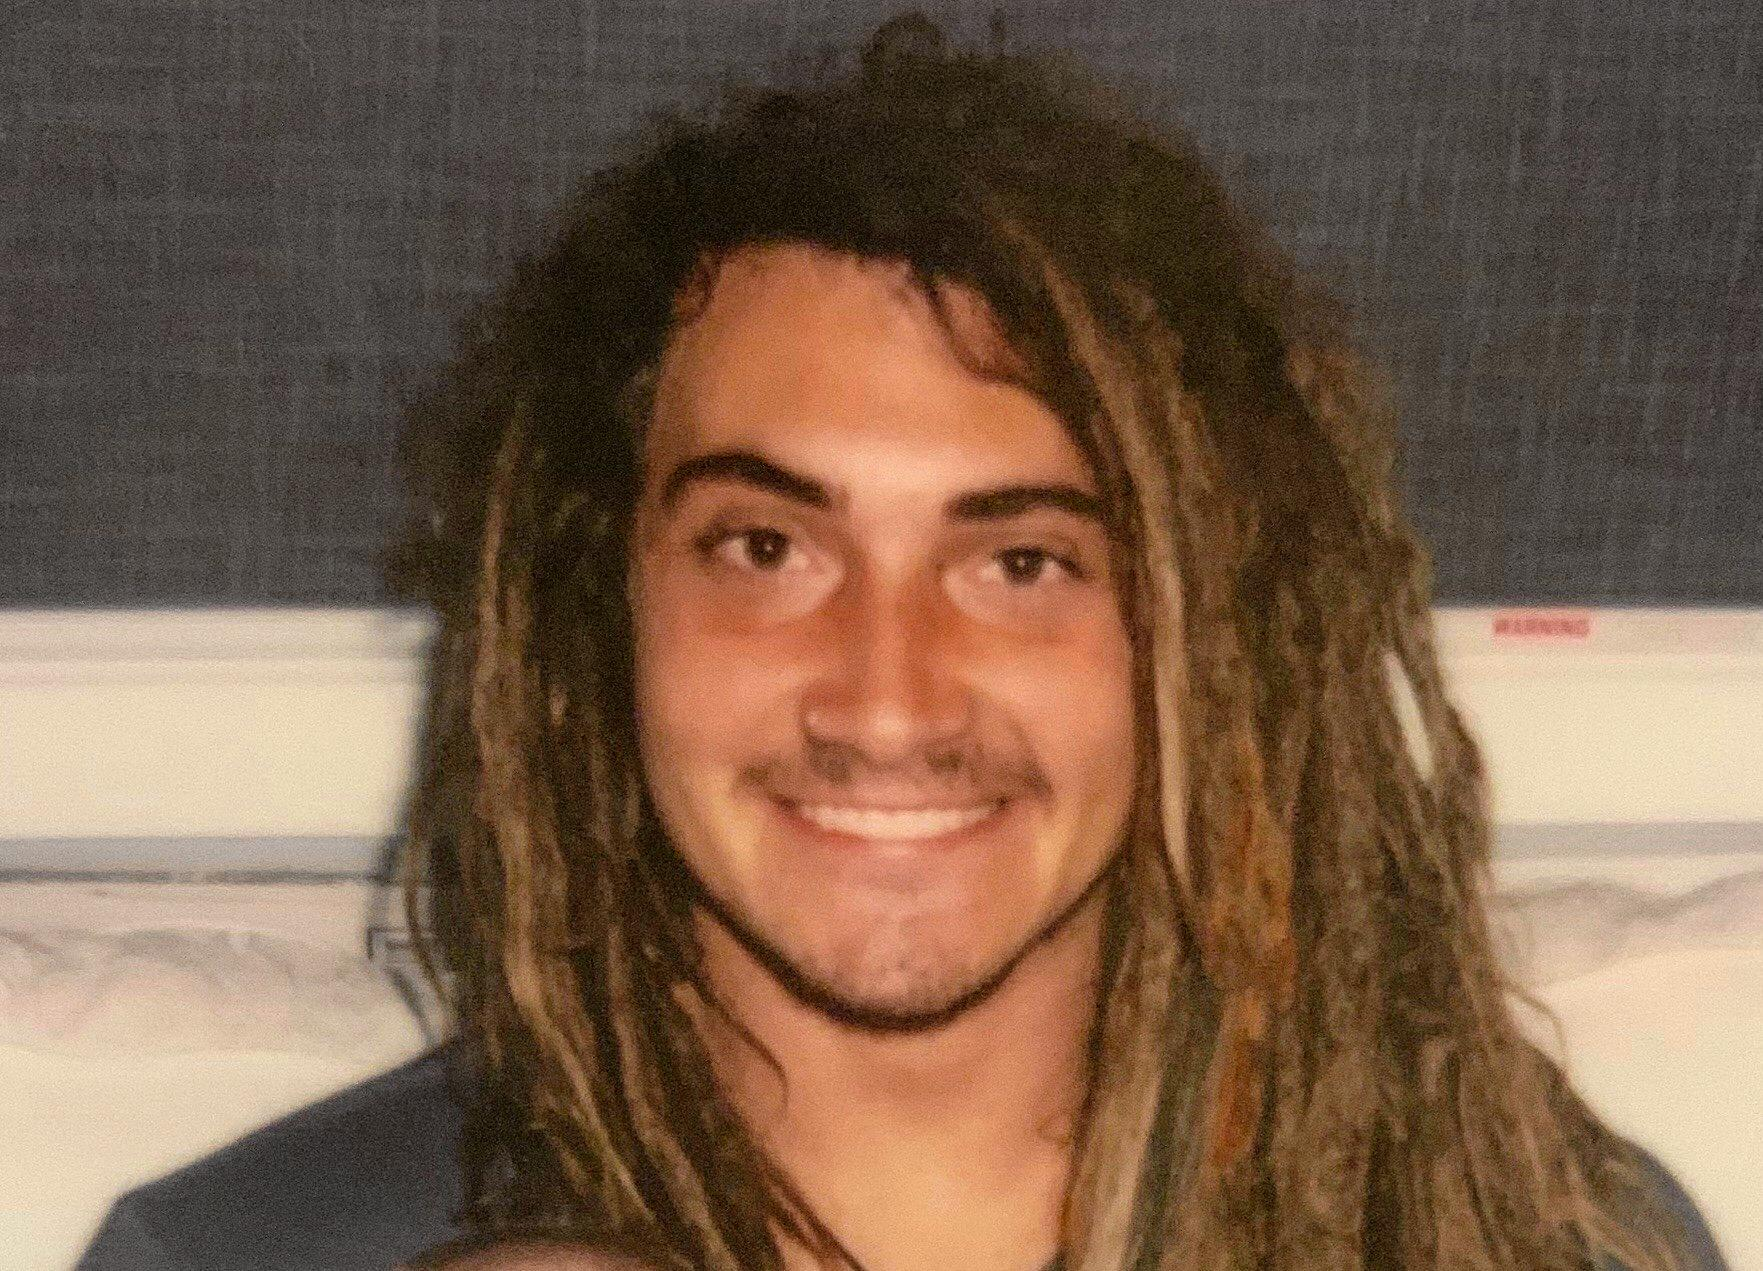 An inquest is being held into the death of Tristan Francis Naudi, 23, who passed away at Lismore Base Hospital on the night of January 18, 2016.